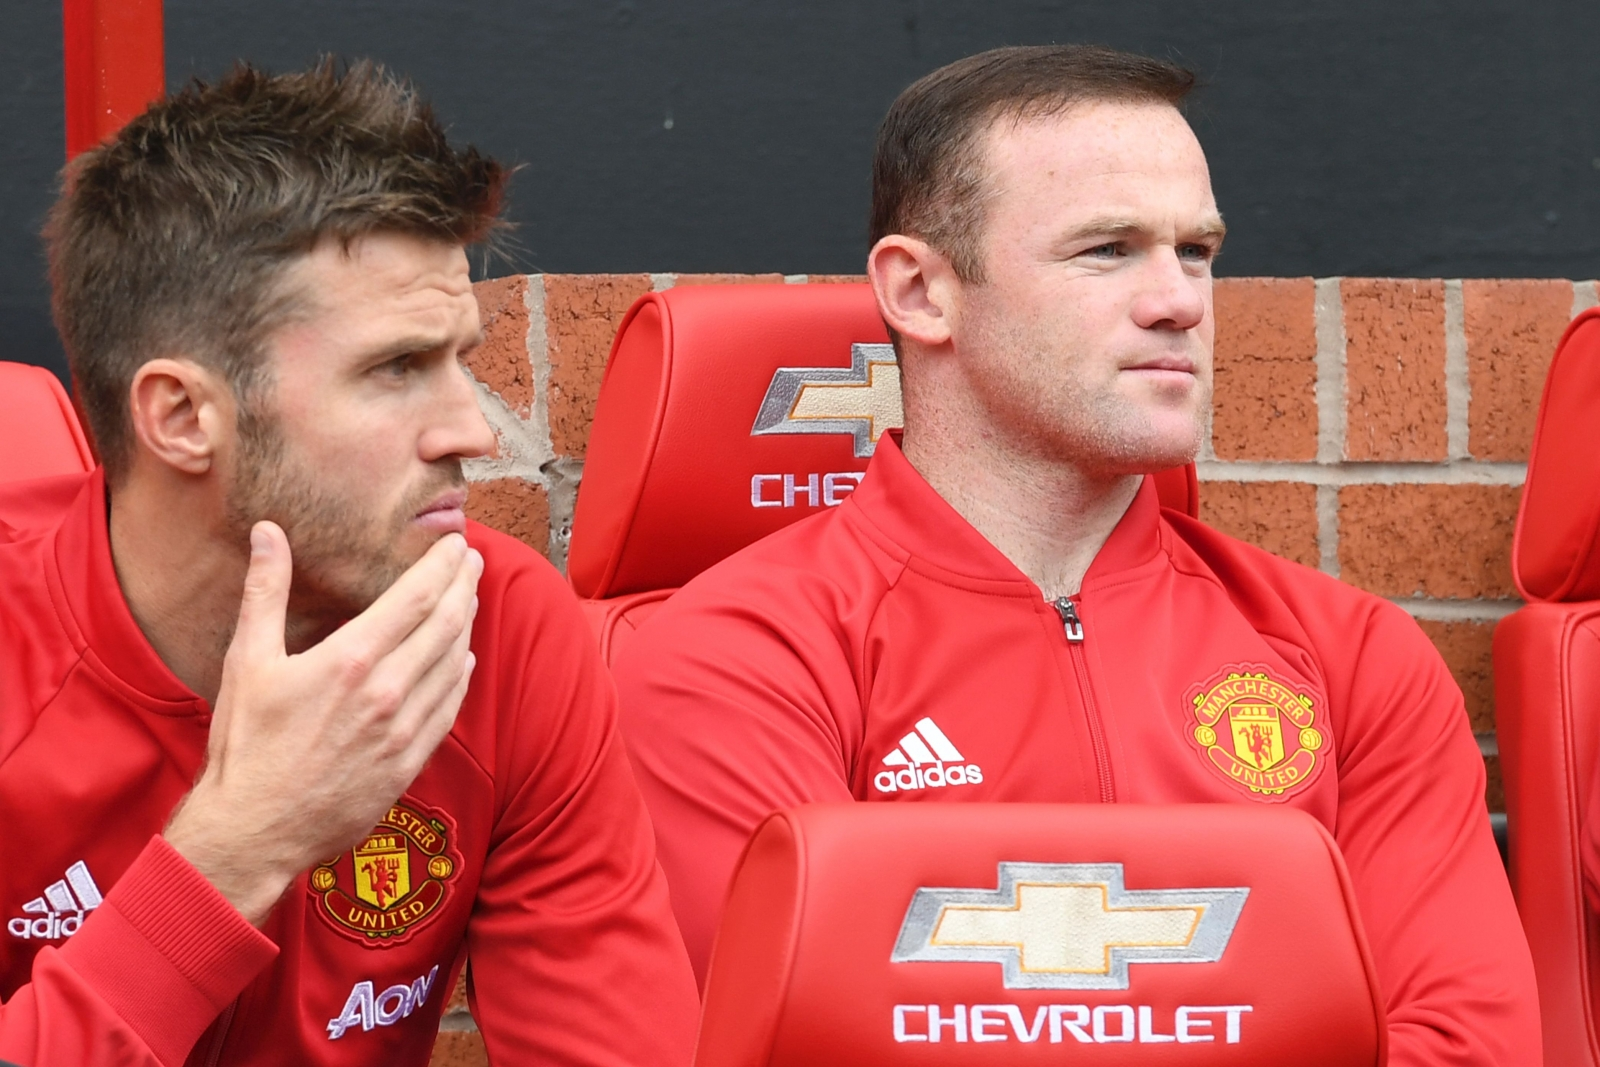 Michael Carrick and Wayne Rooney